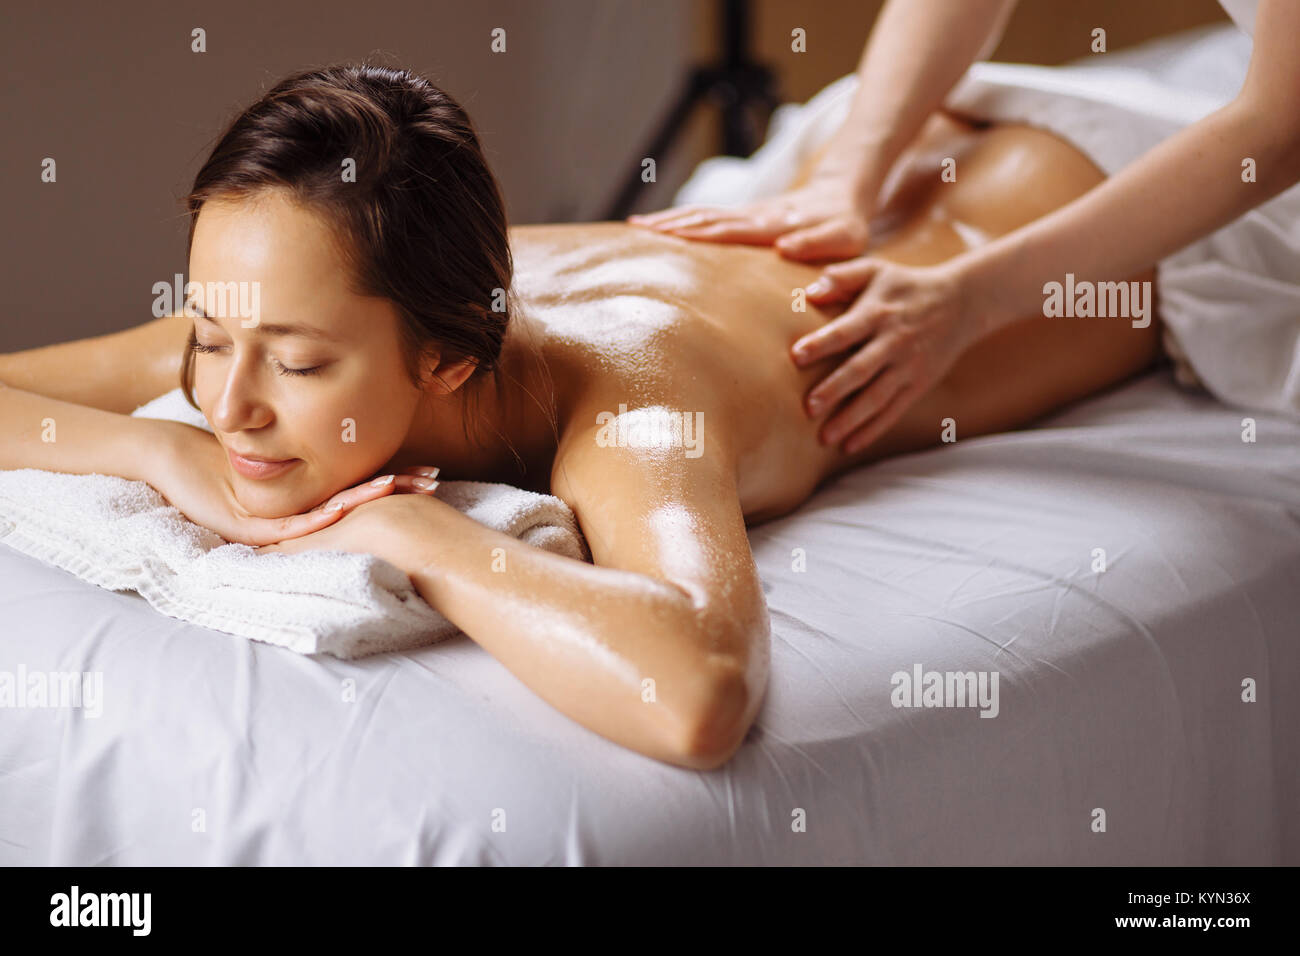 Salon Massage Body Body Spa Body Massage Treatment Woman Having Massage In Spa